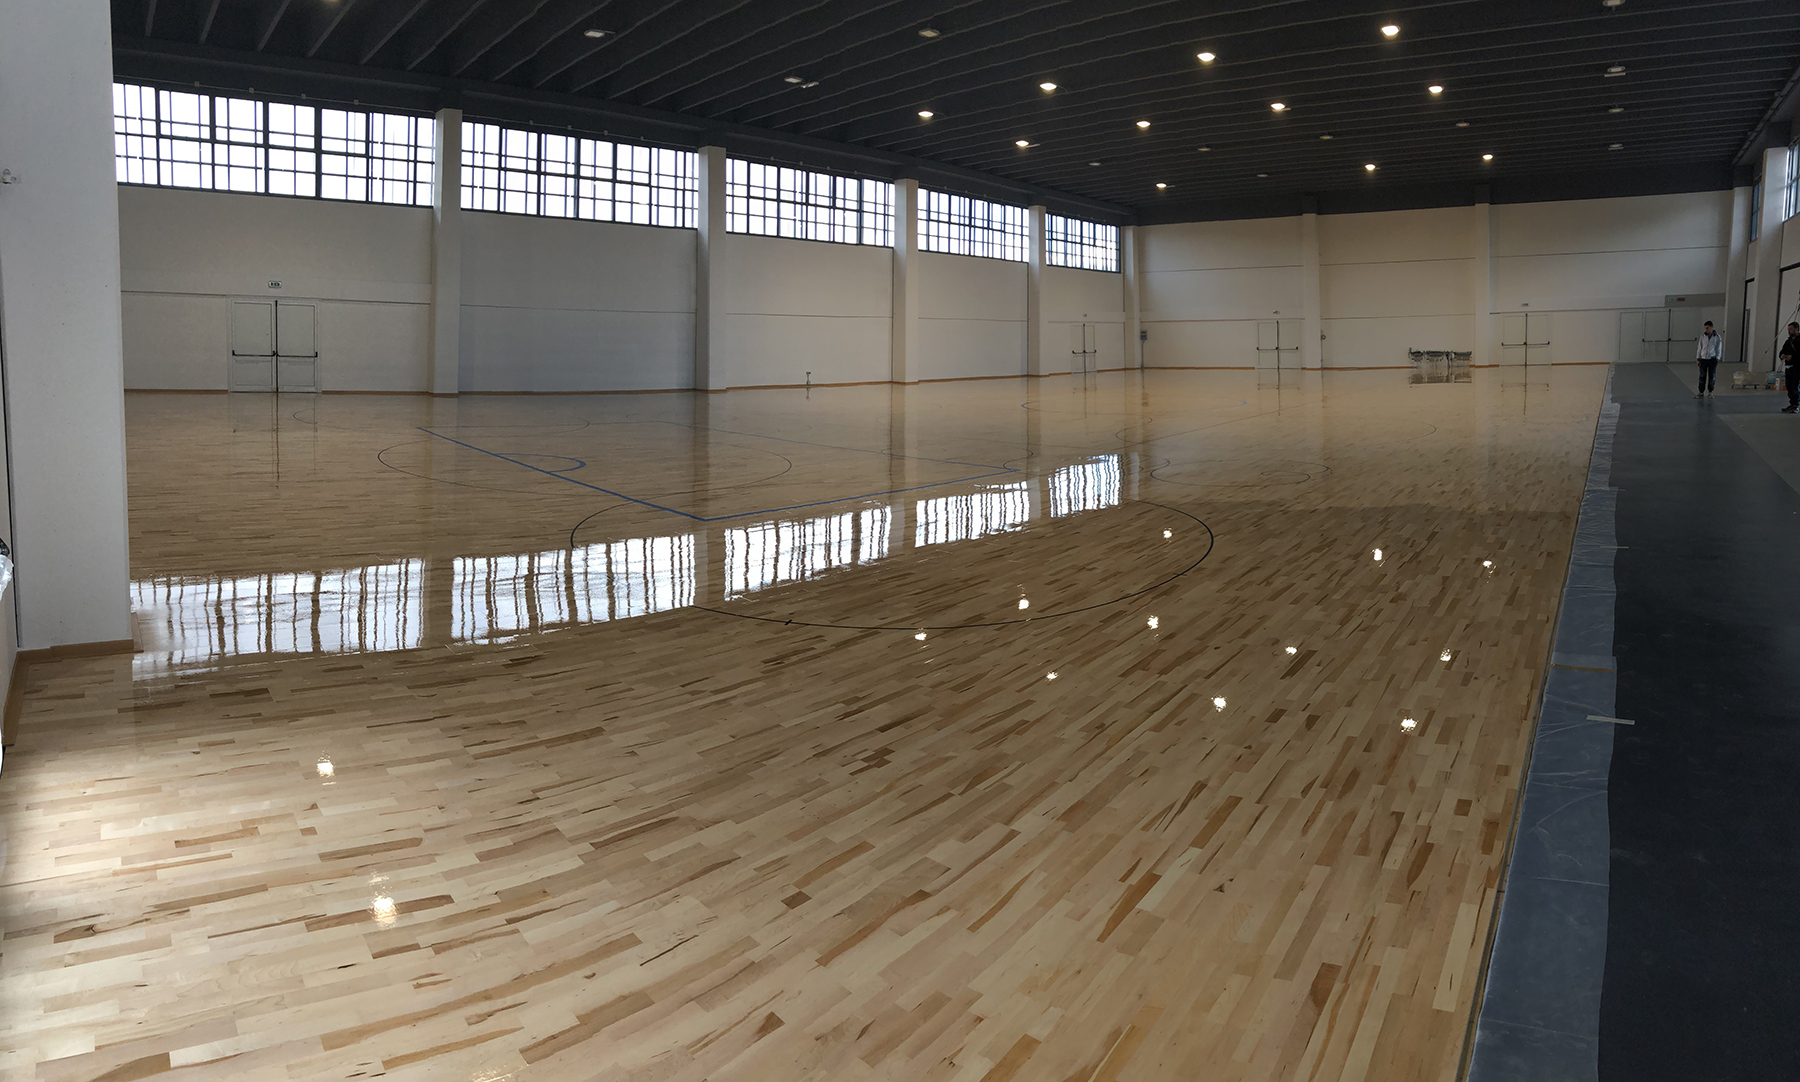 1250 square meters used for hockey